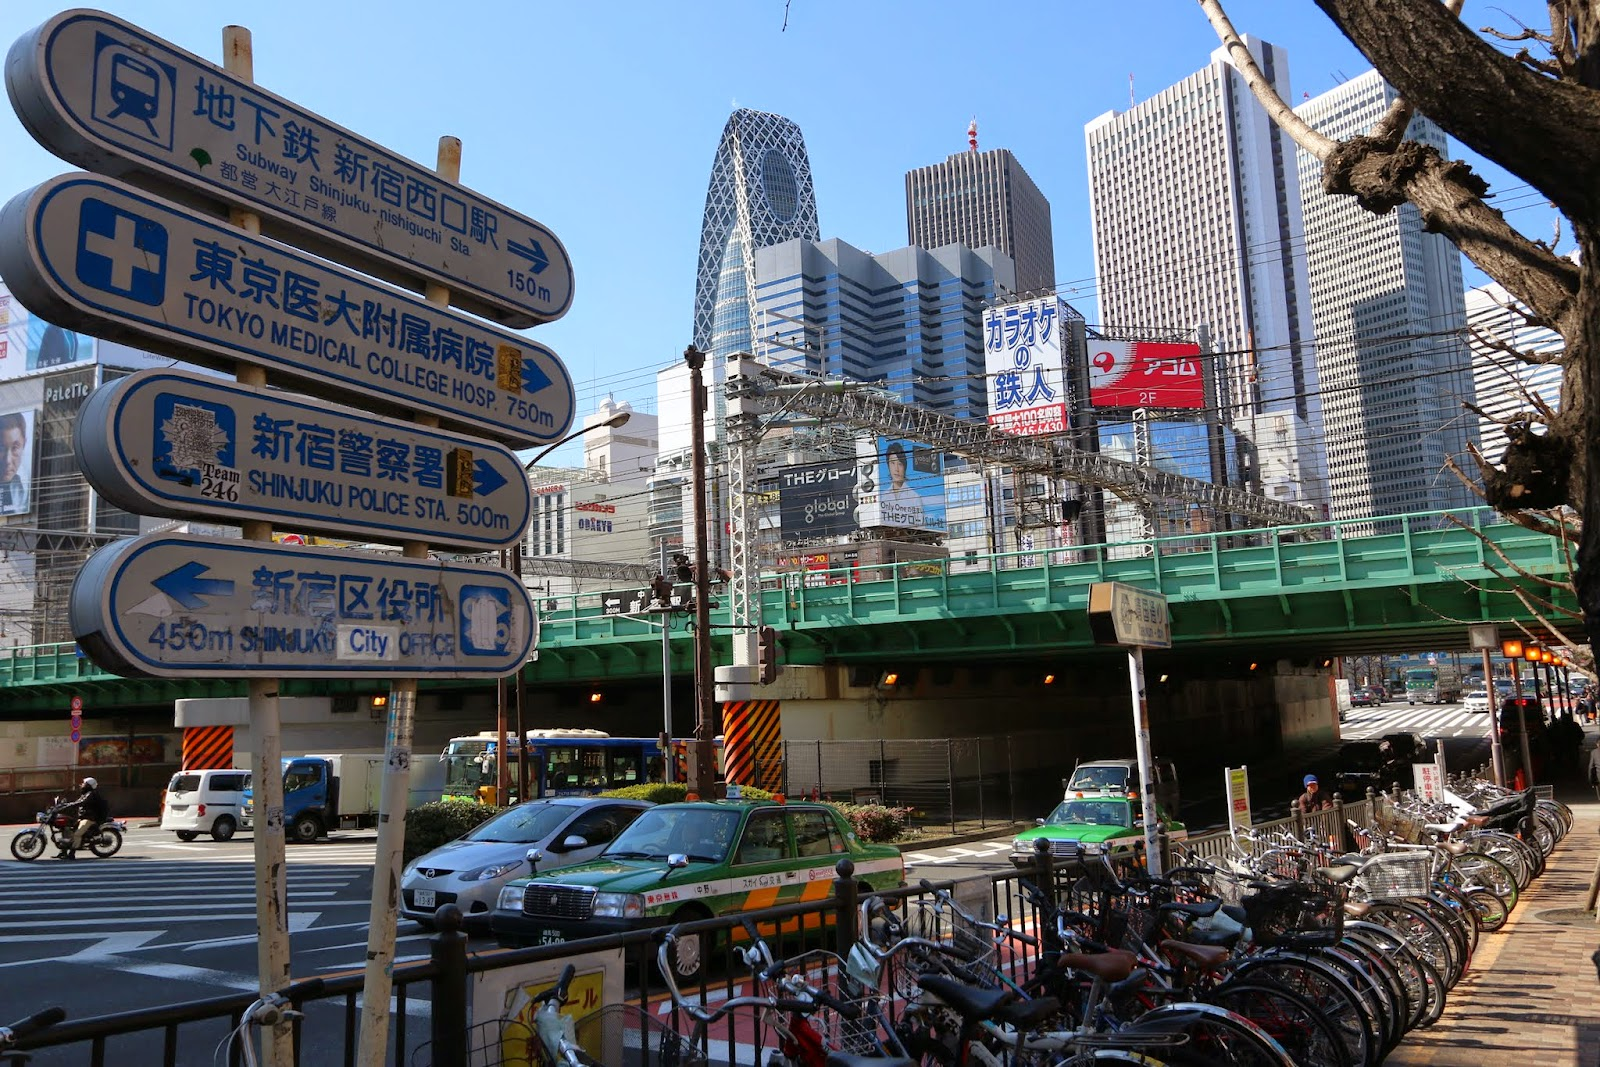 Standing at the border between Skyscraper District and Kabukicho of Shinjuku City in Tokyo, Japan